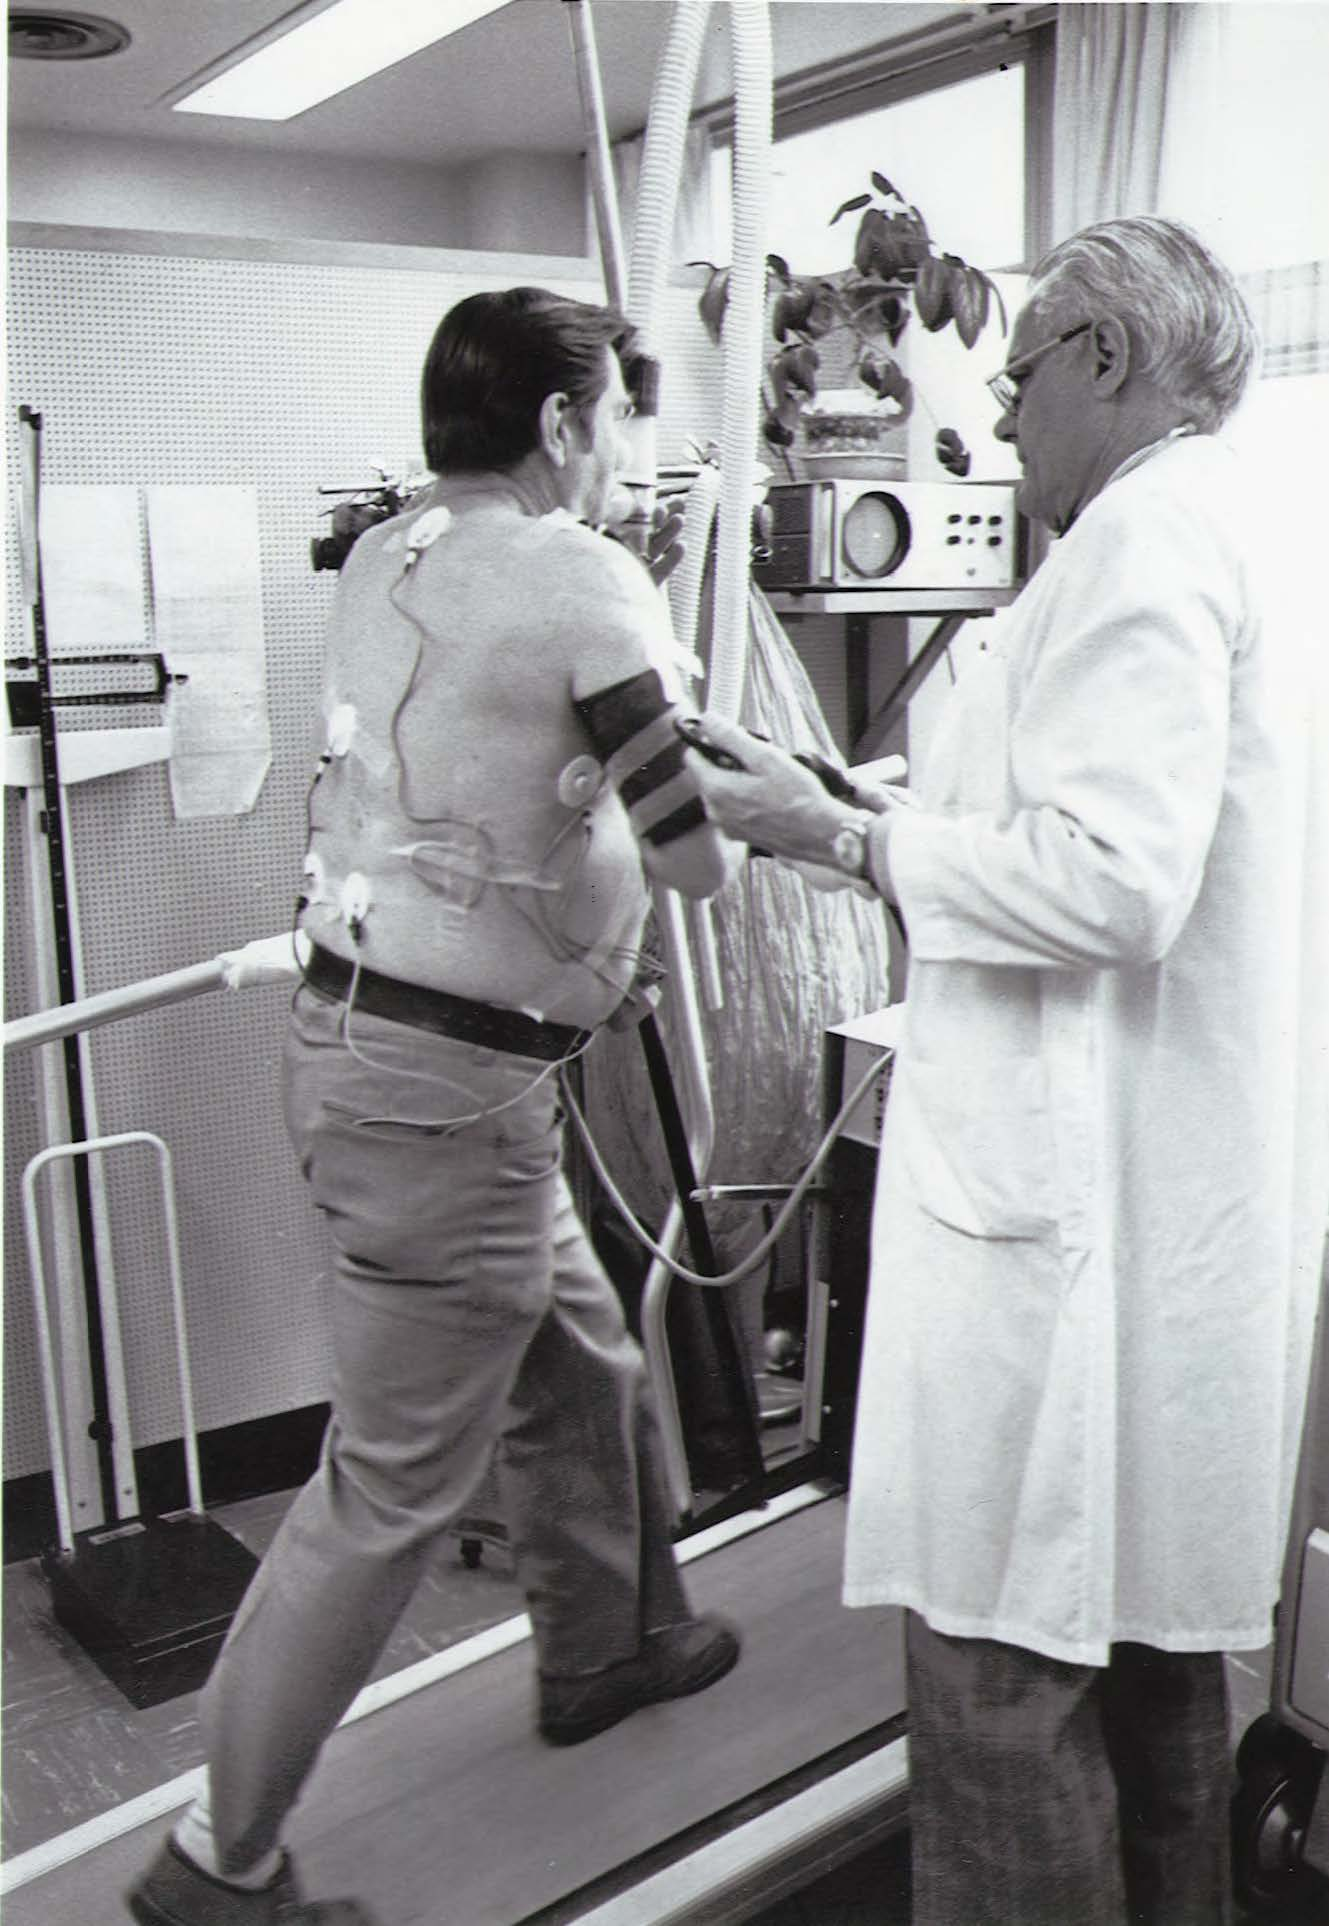 Dr. Robert Bruce conducts a treadmill test on a patient.